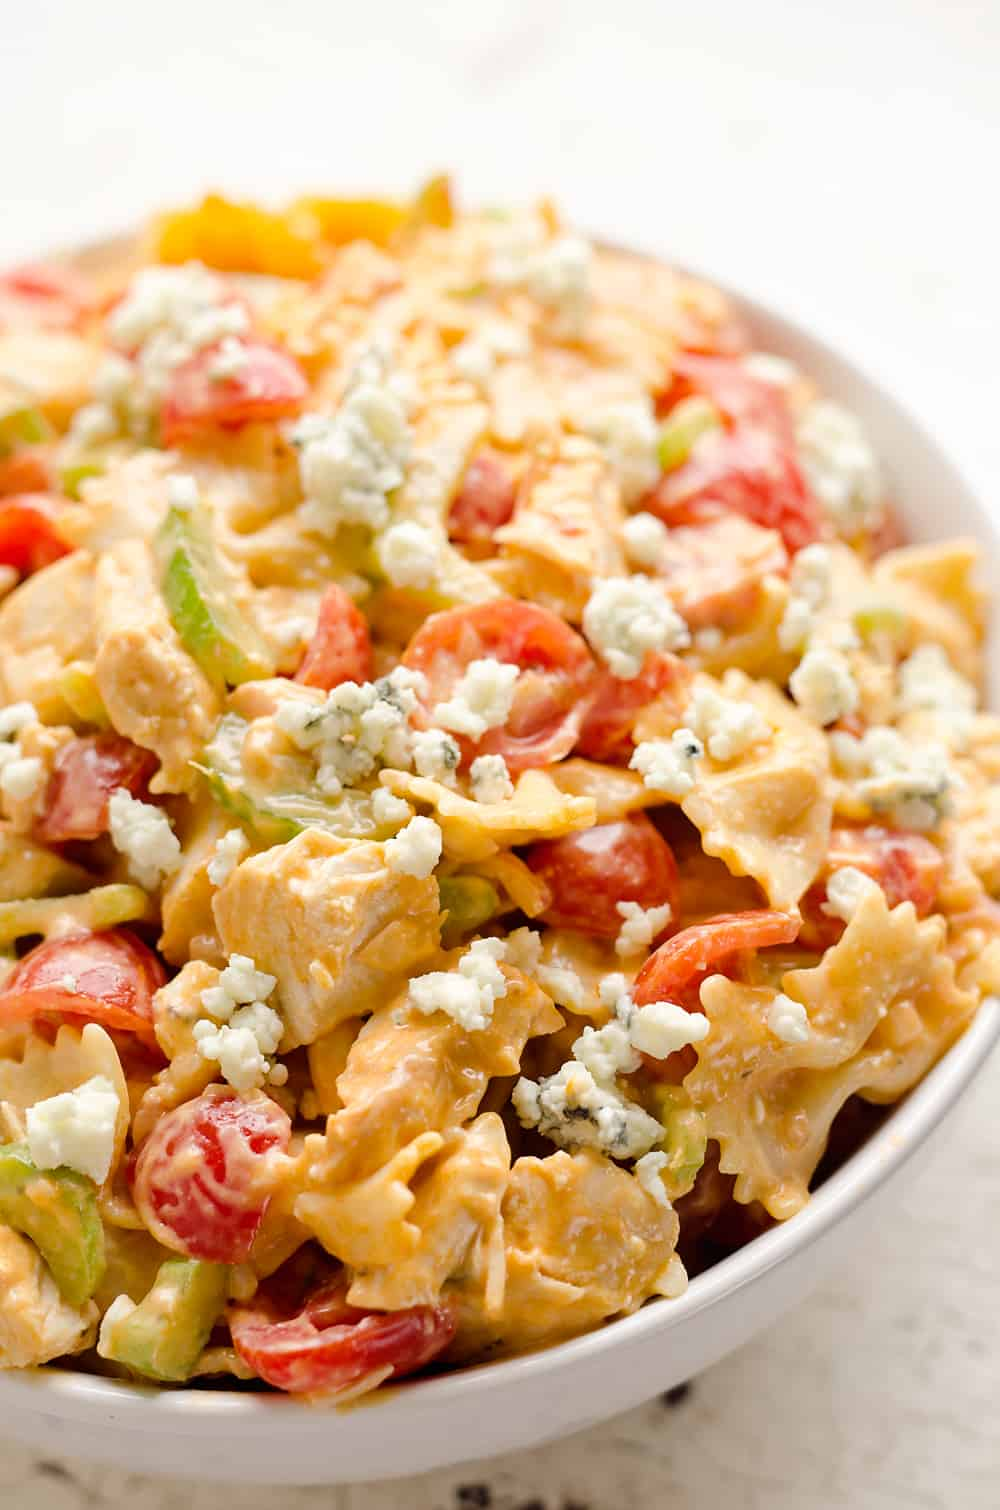 Buffalo-Ranch-Chicken-Pasta-Salad---The-Creative-Bite-2-copy